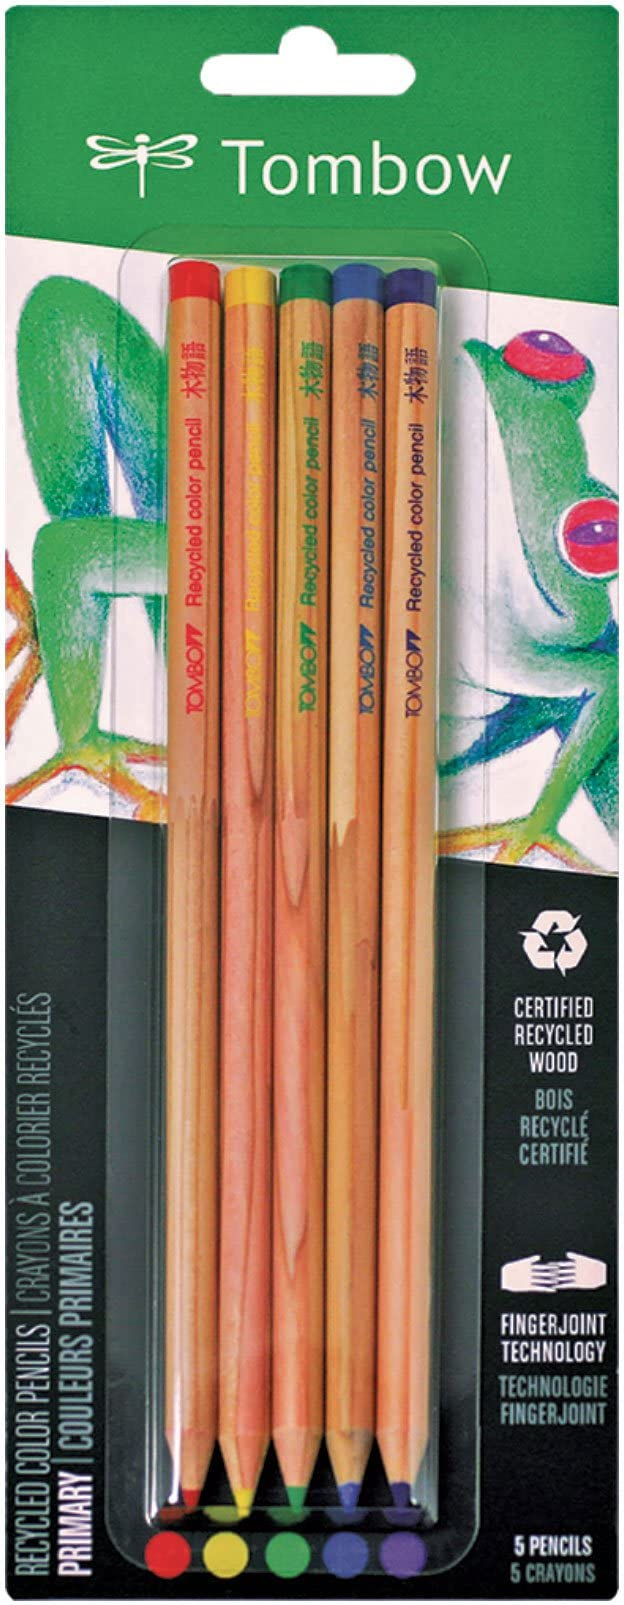 Artist Recycled Cedar Tombow 61550 Recycled Colored Pencils Natural Wood